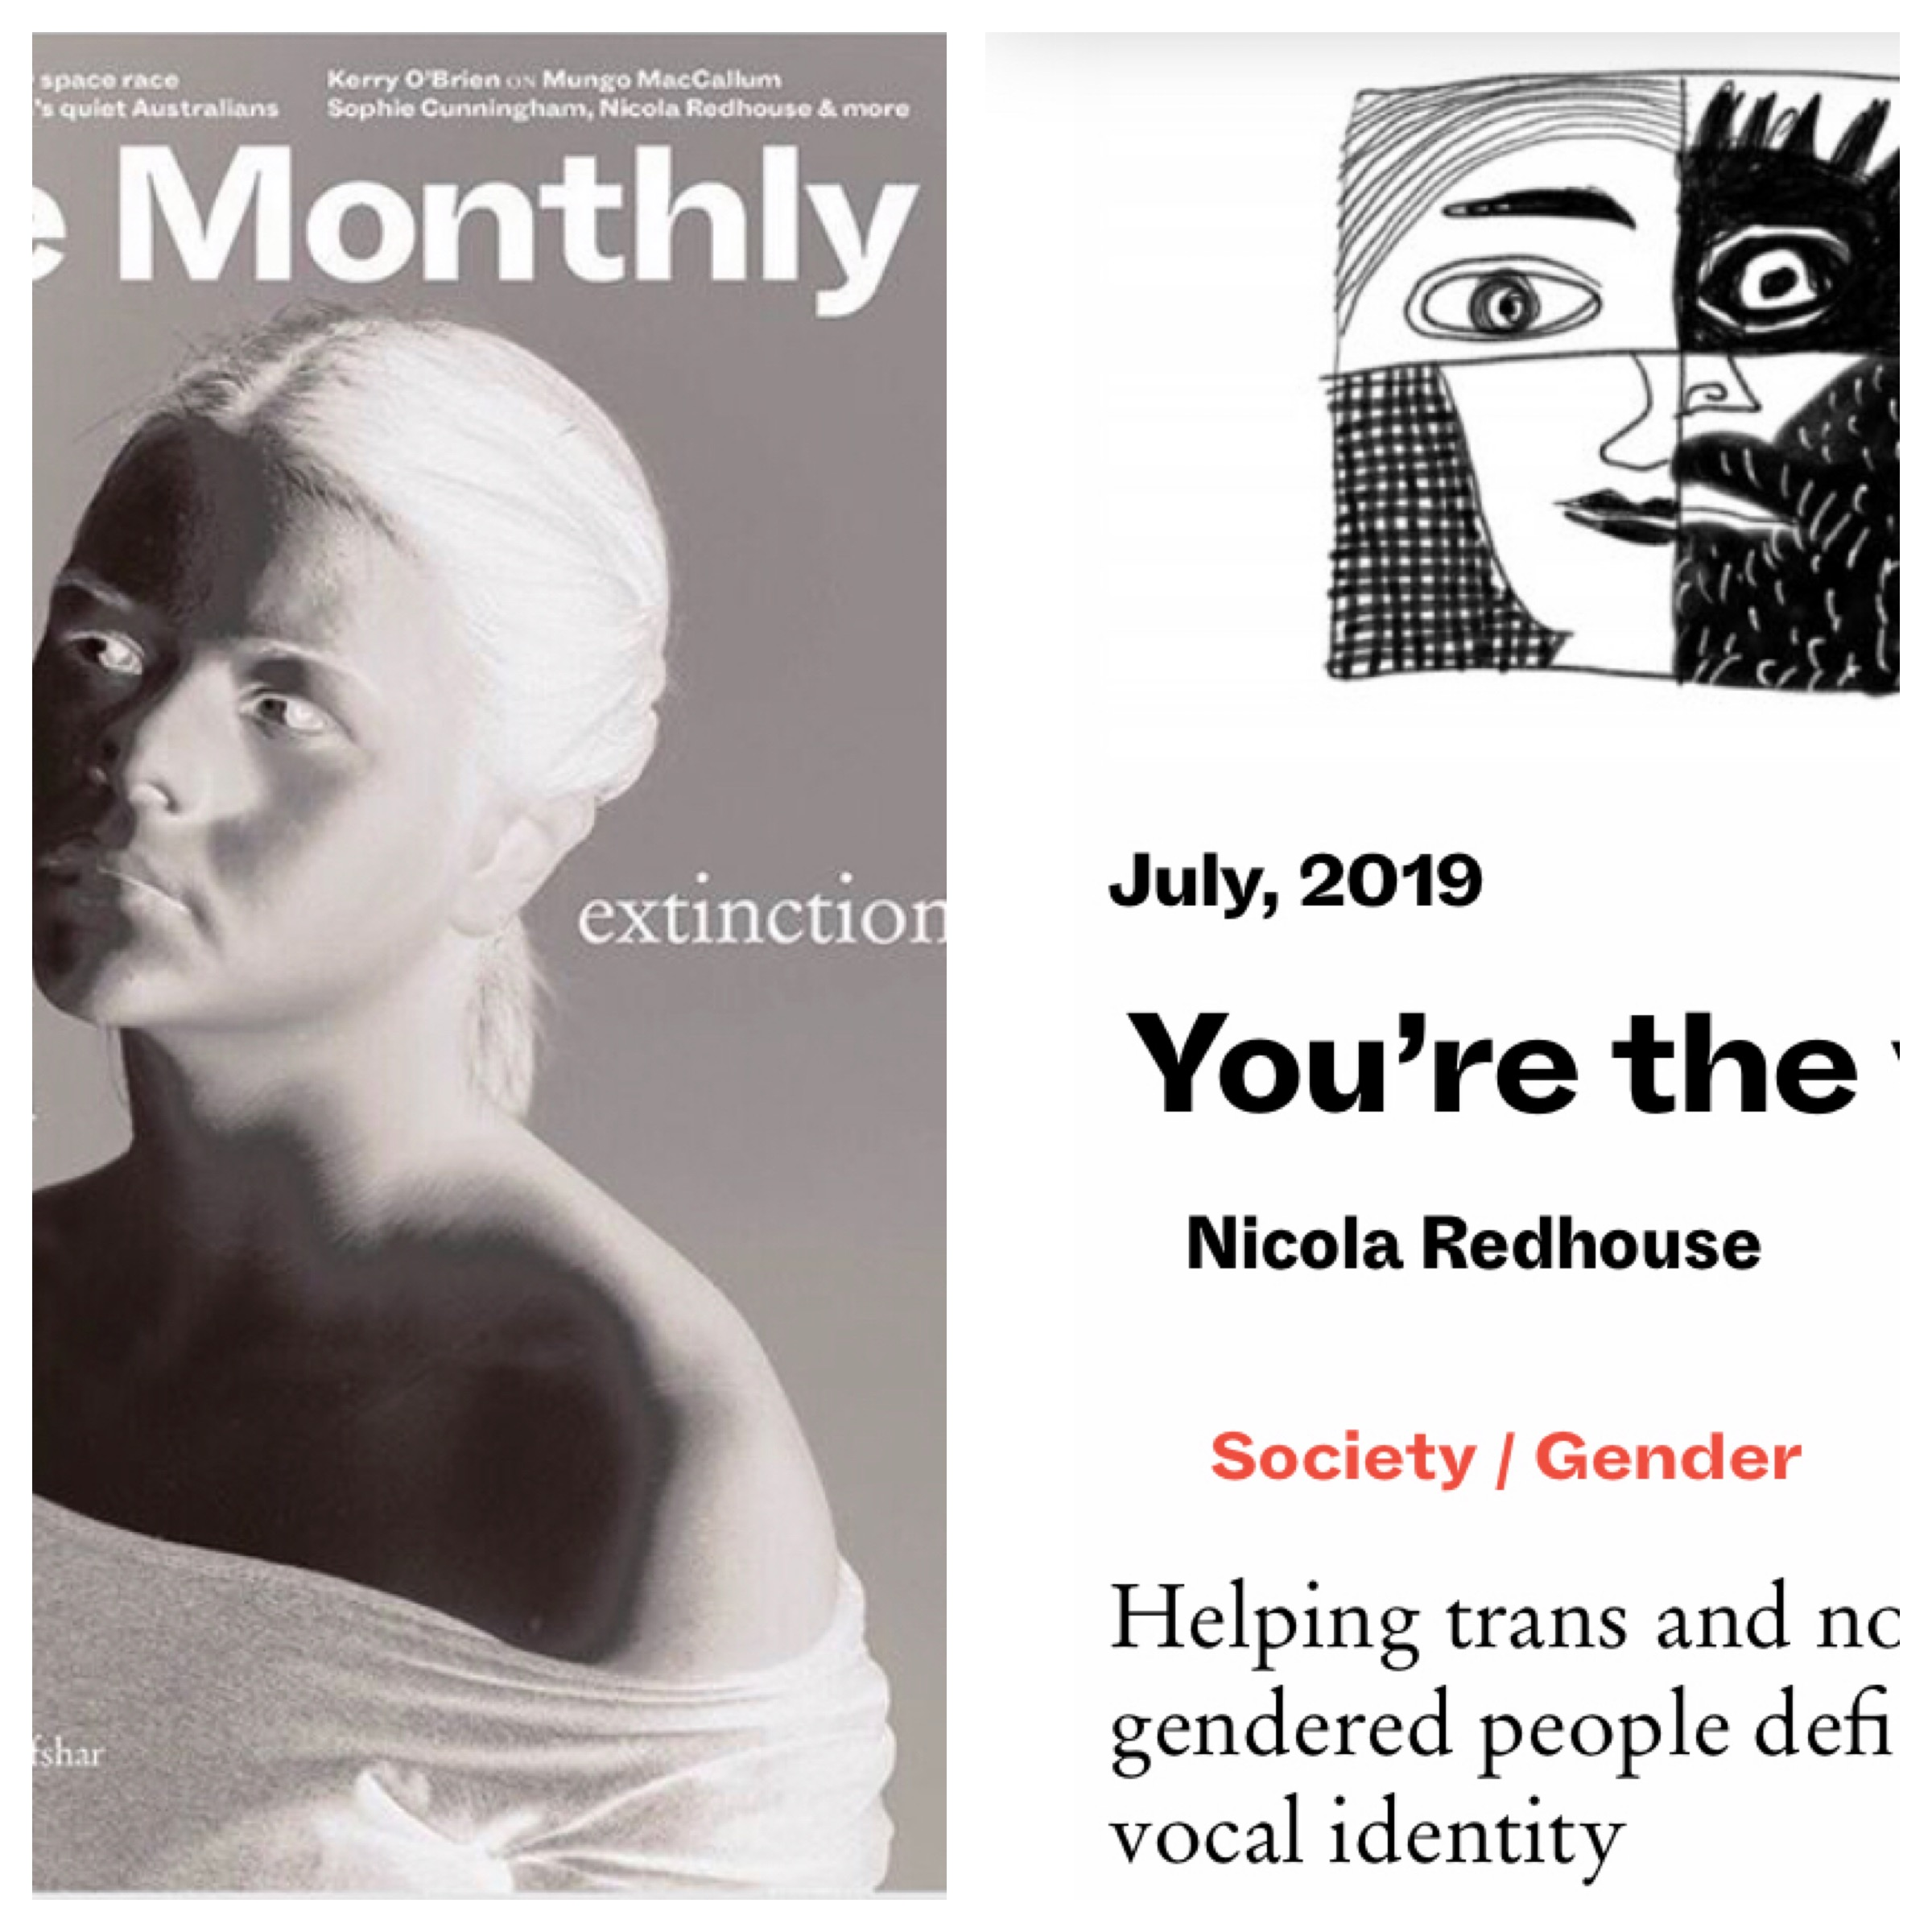 'You're the Voice' - The Monthly, July, 2019Helping trans and non-binary gendered people define their vocal identity.